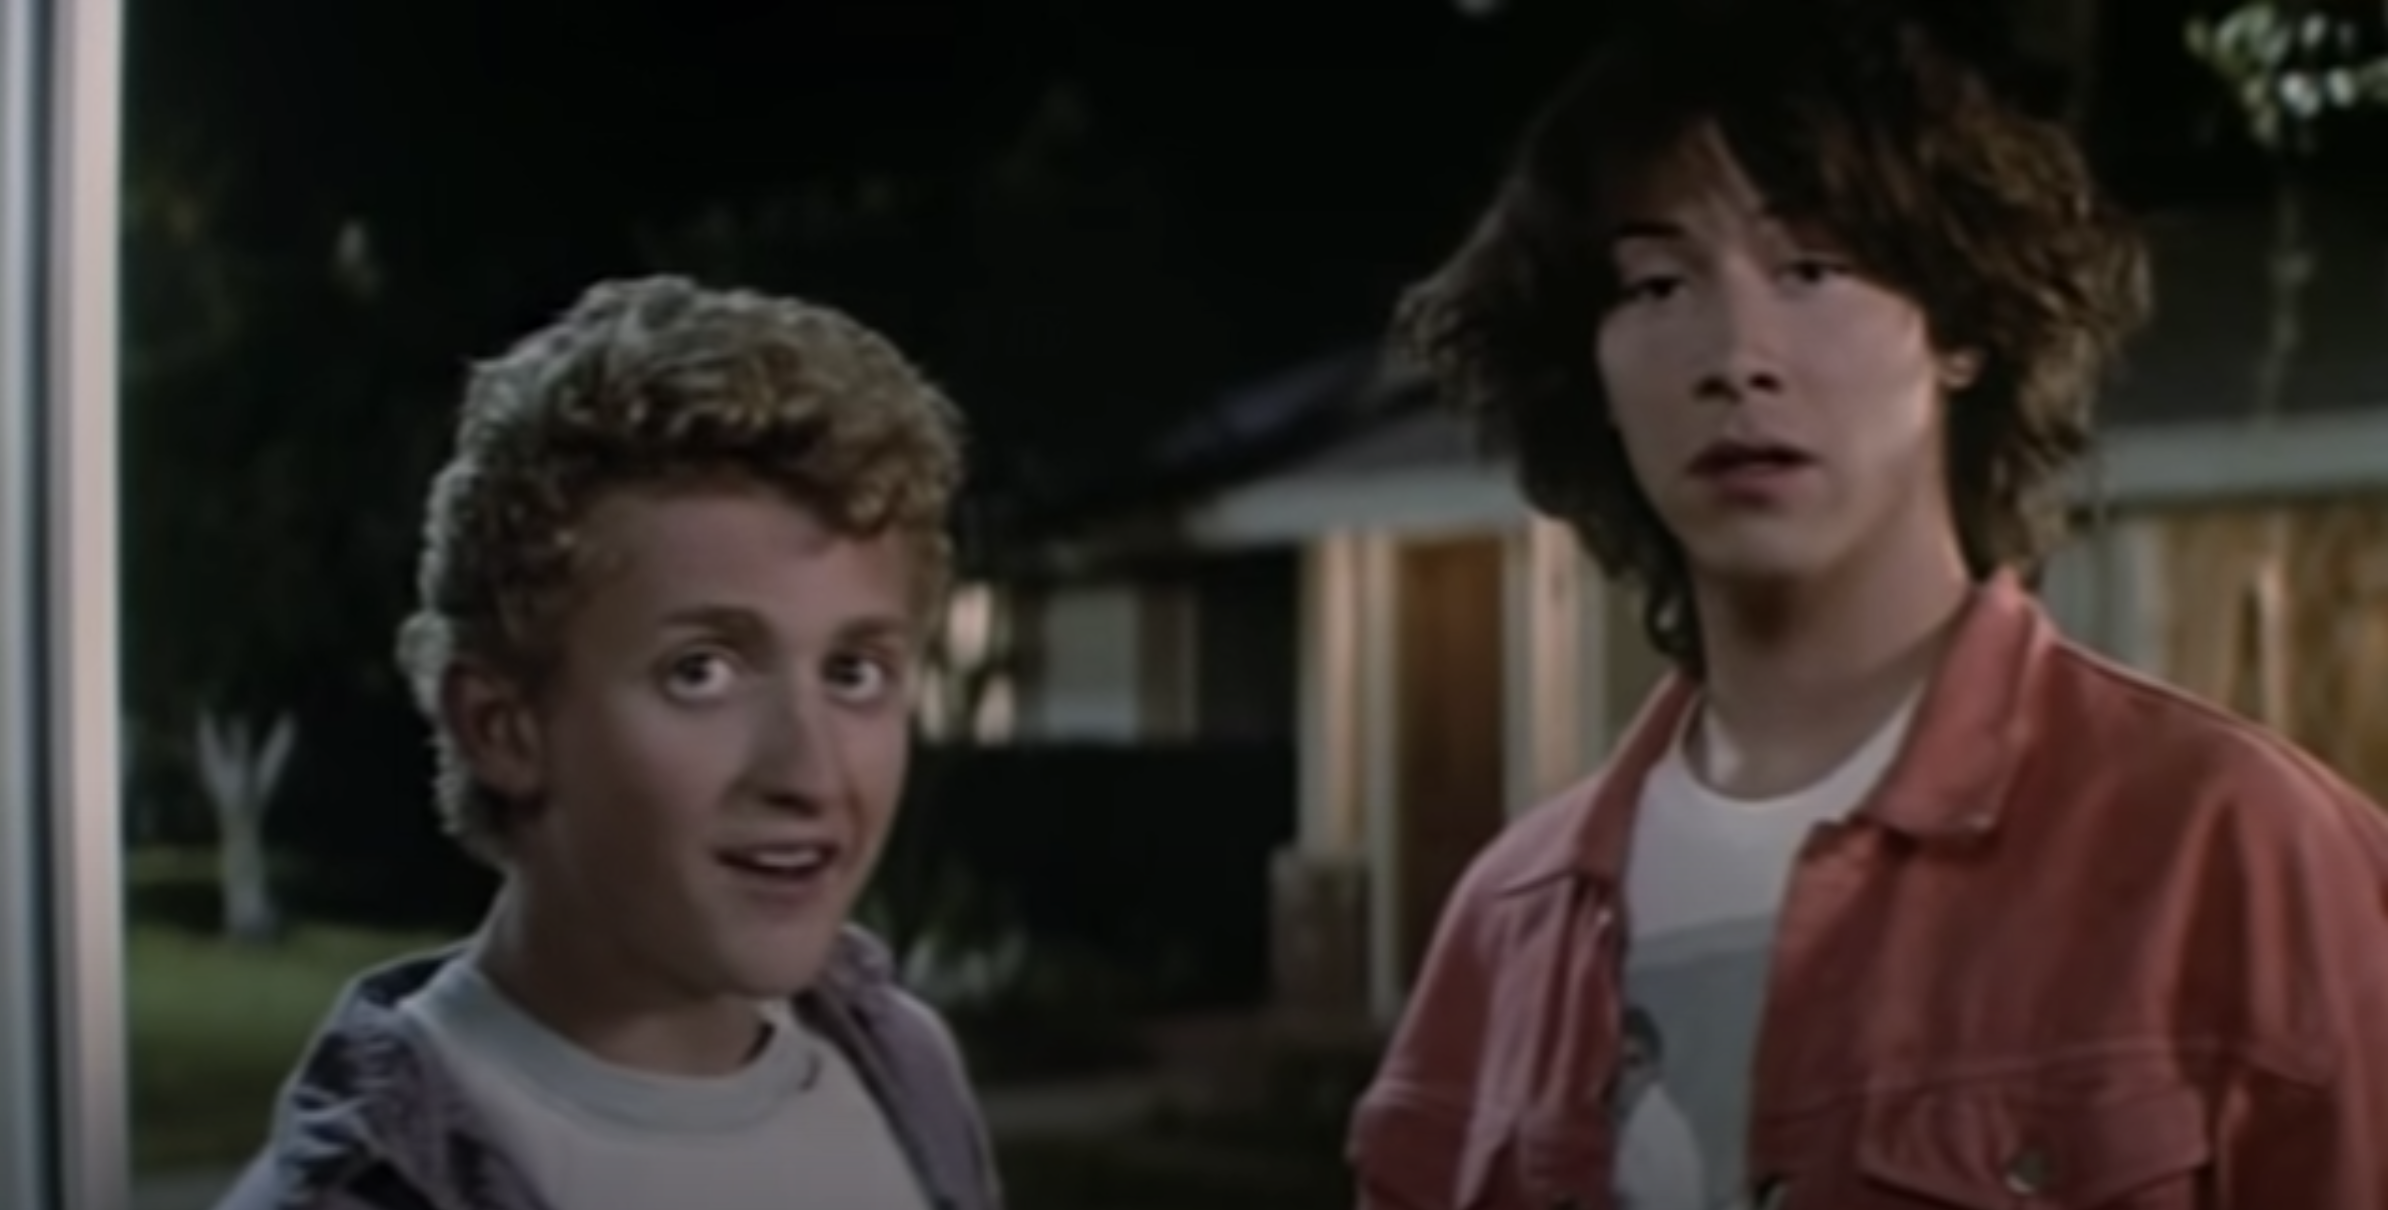 Bill and Ted standing at someone's door